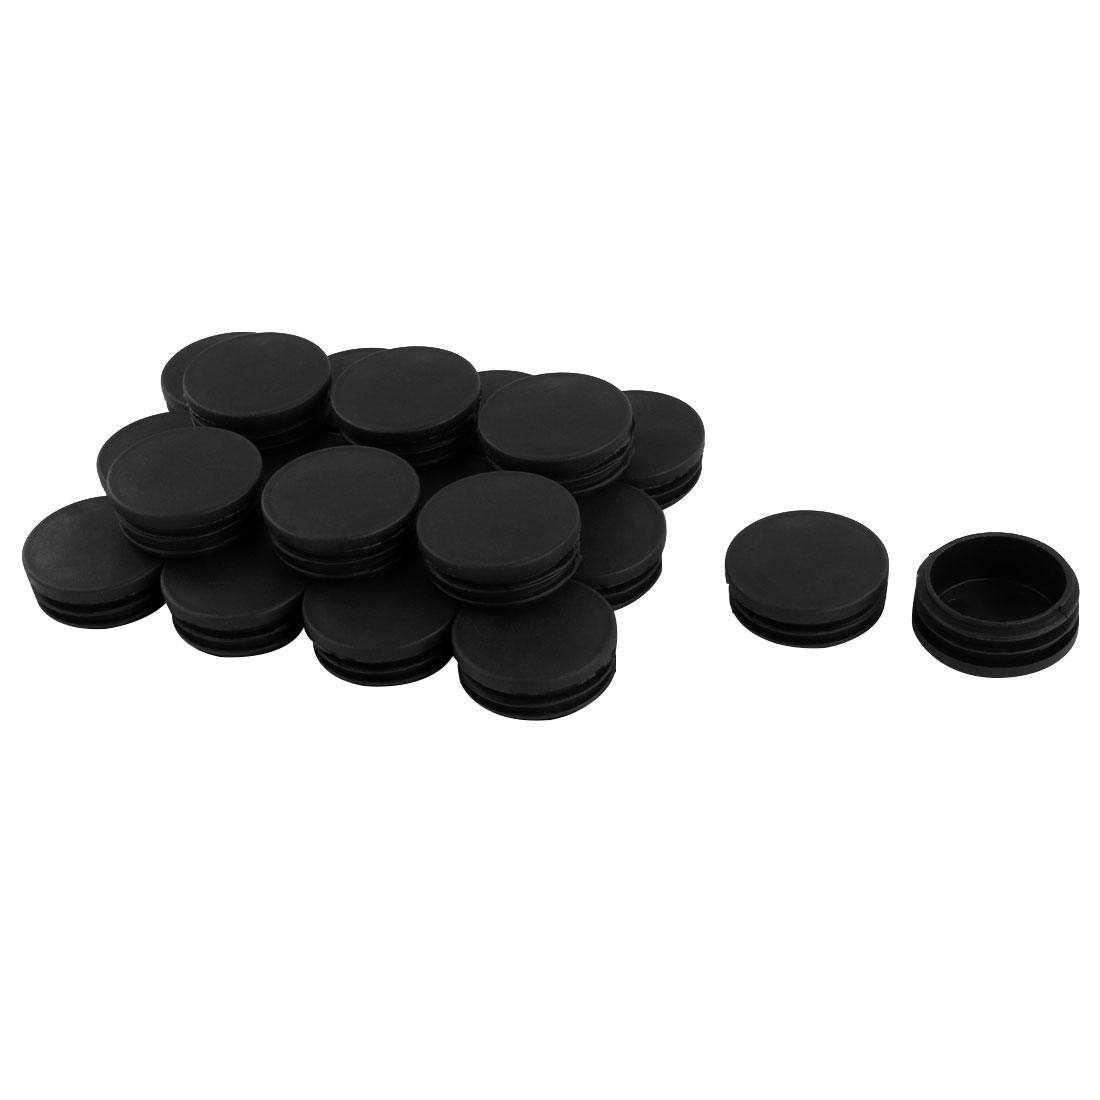 Furniture Table Chair Legs Plastic Round Tube Pipe Insert Cap Cover Black 45mm Dia 20pcs